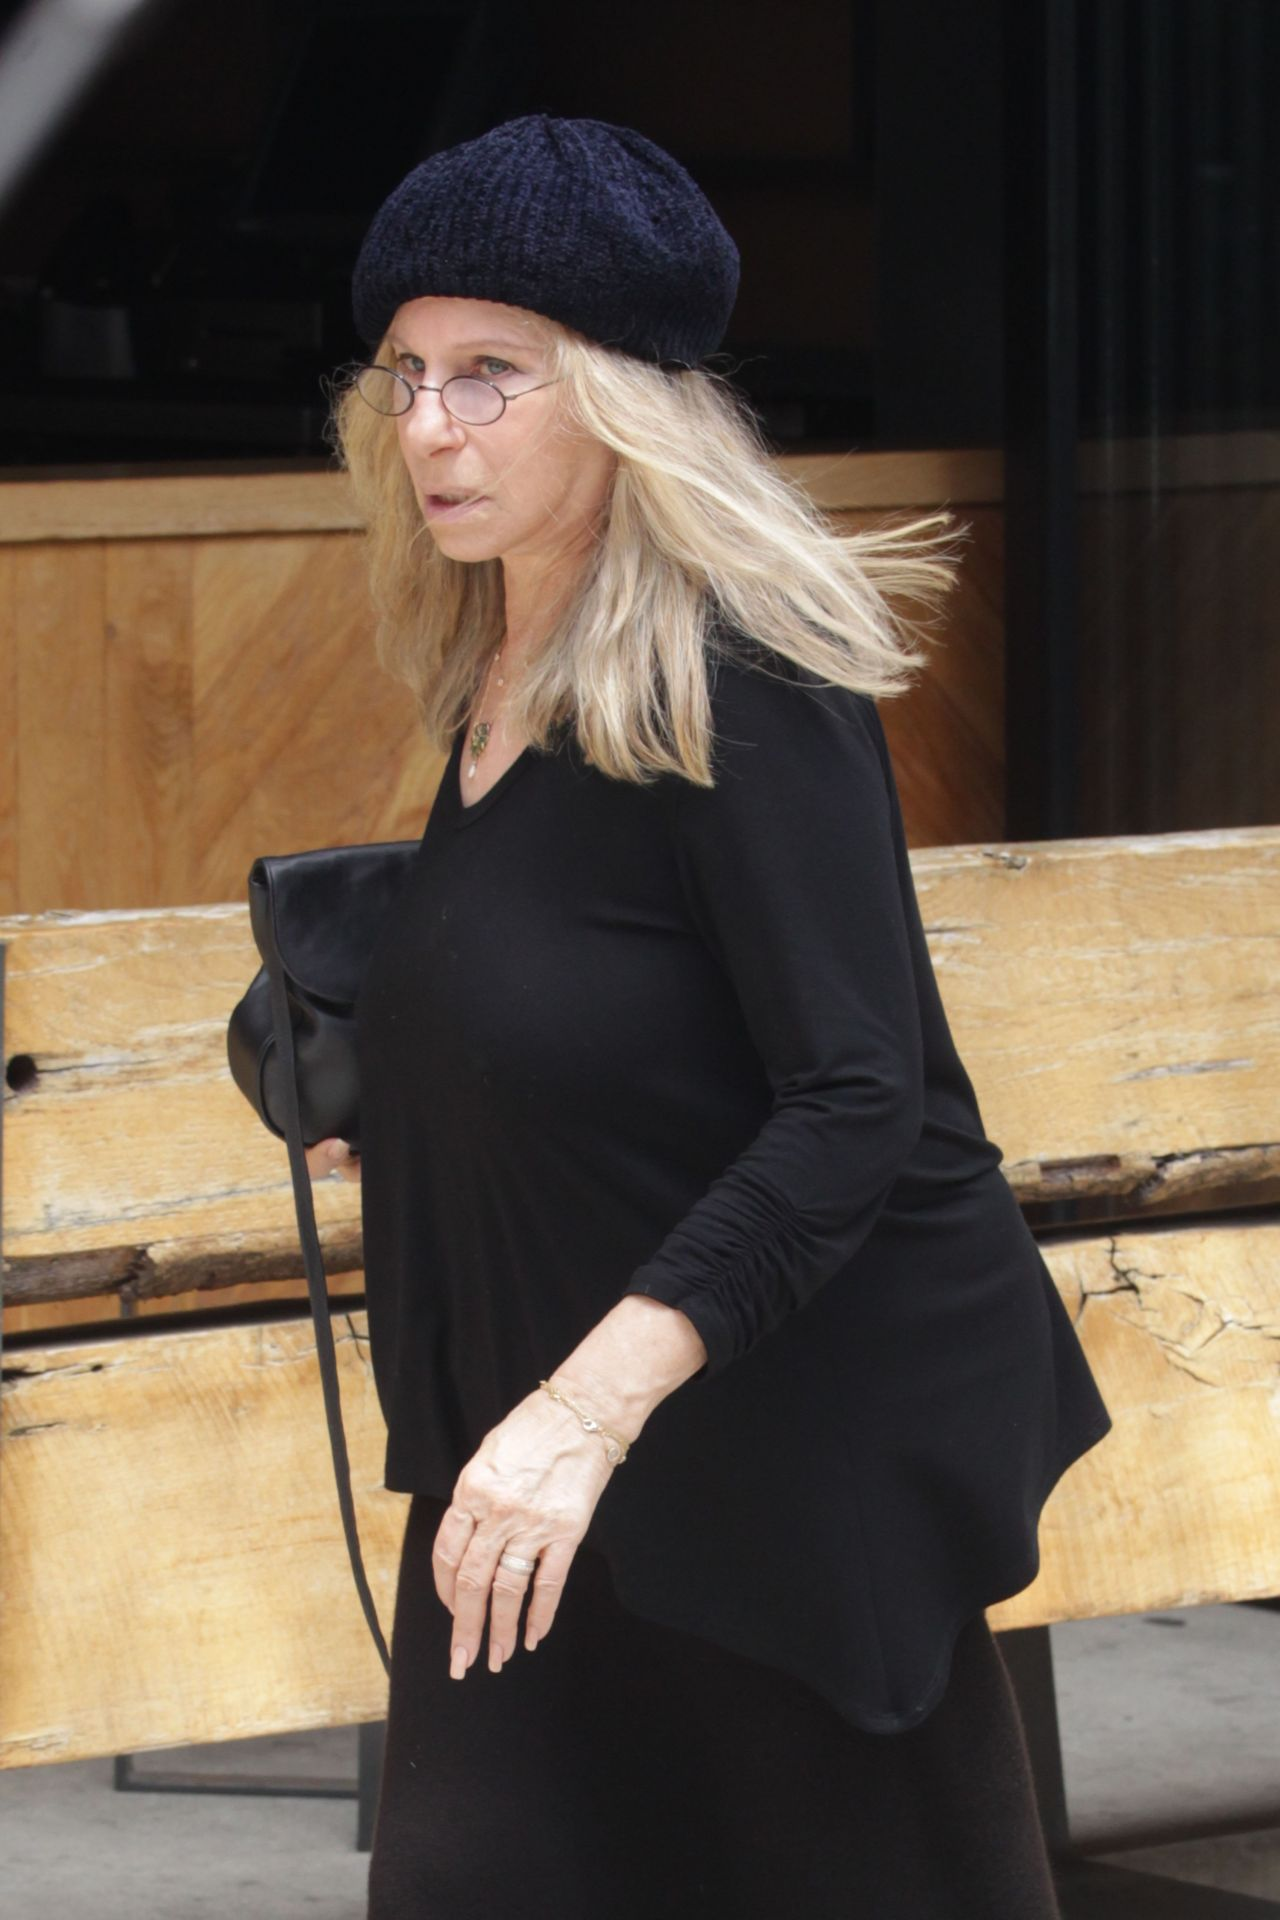 Barbara Streisand Latest Photos Celebmafia